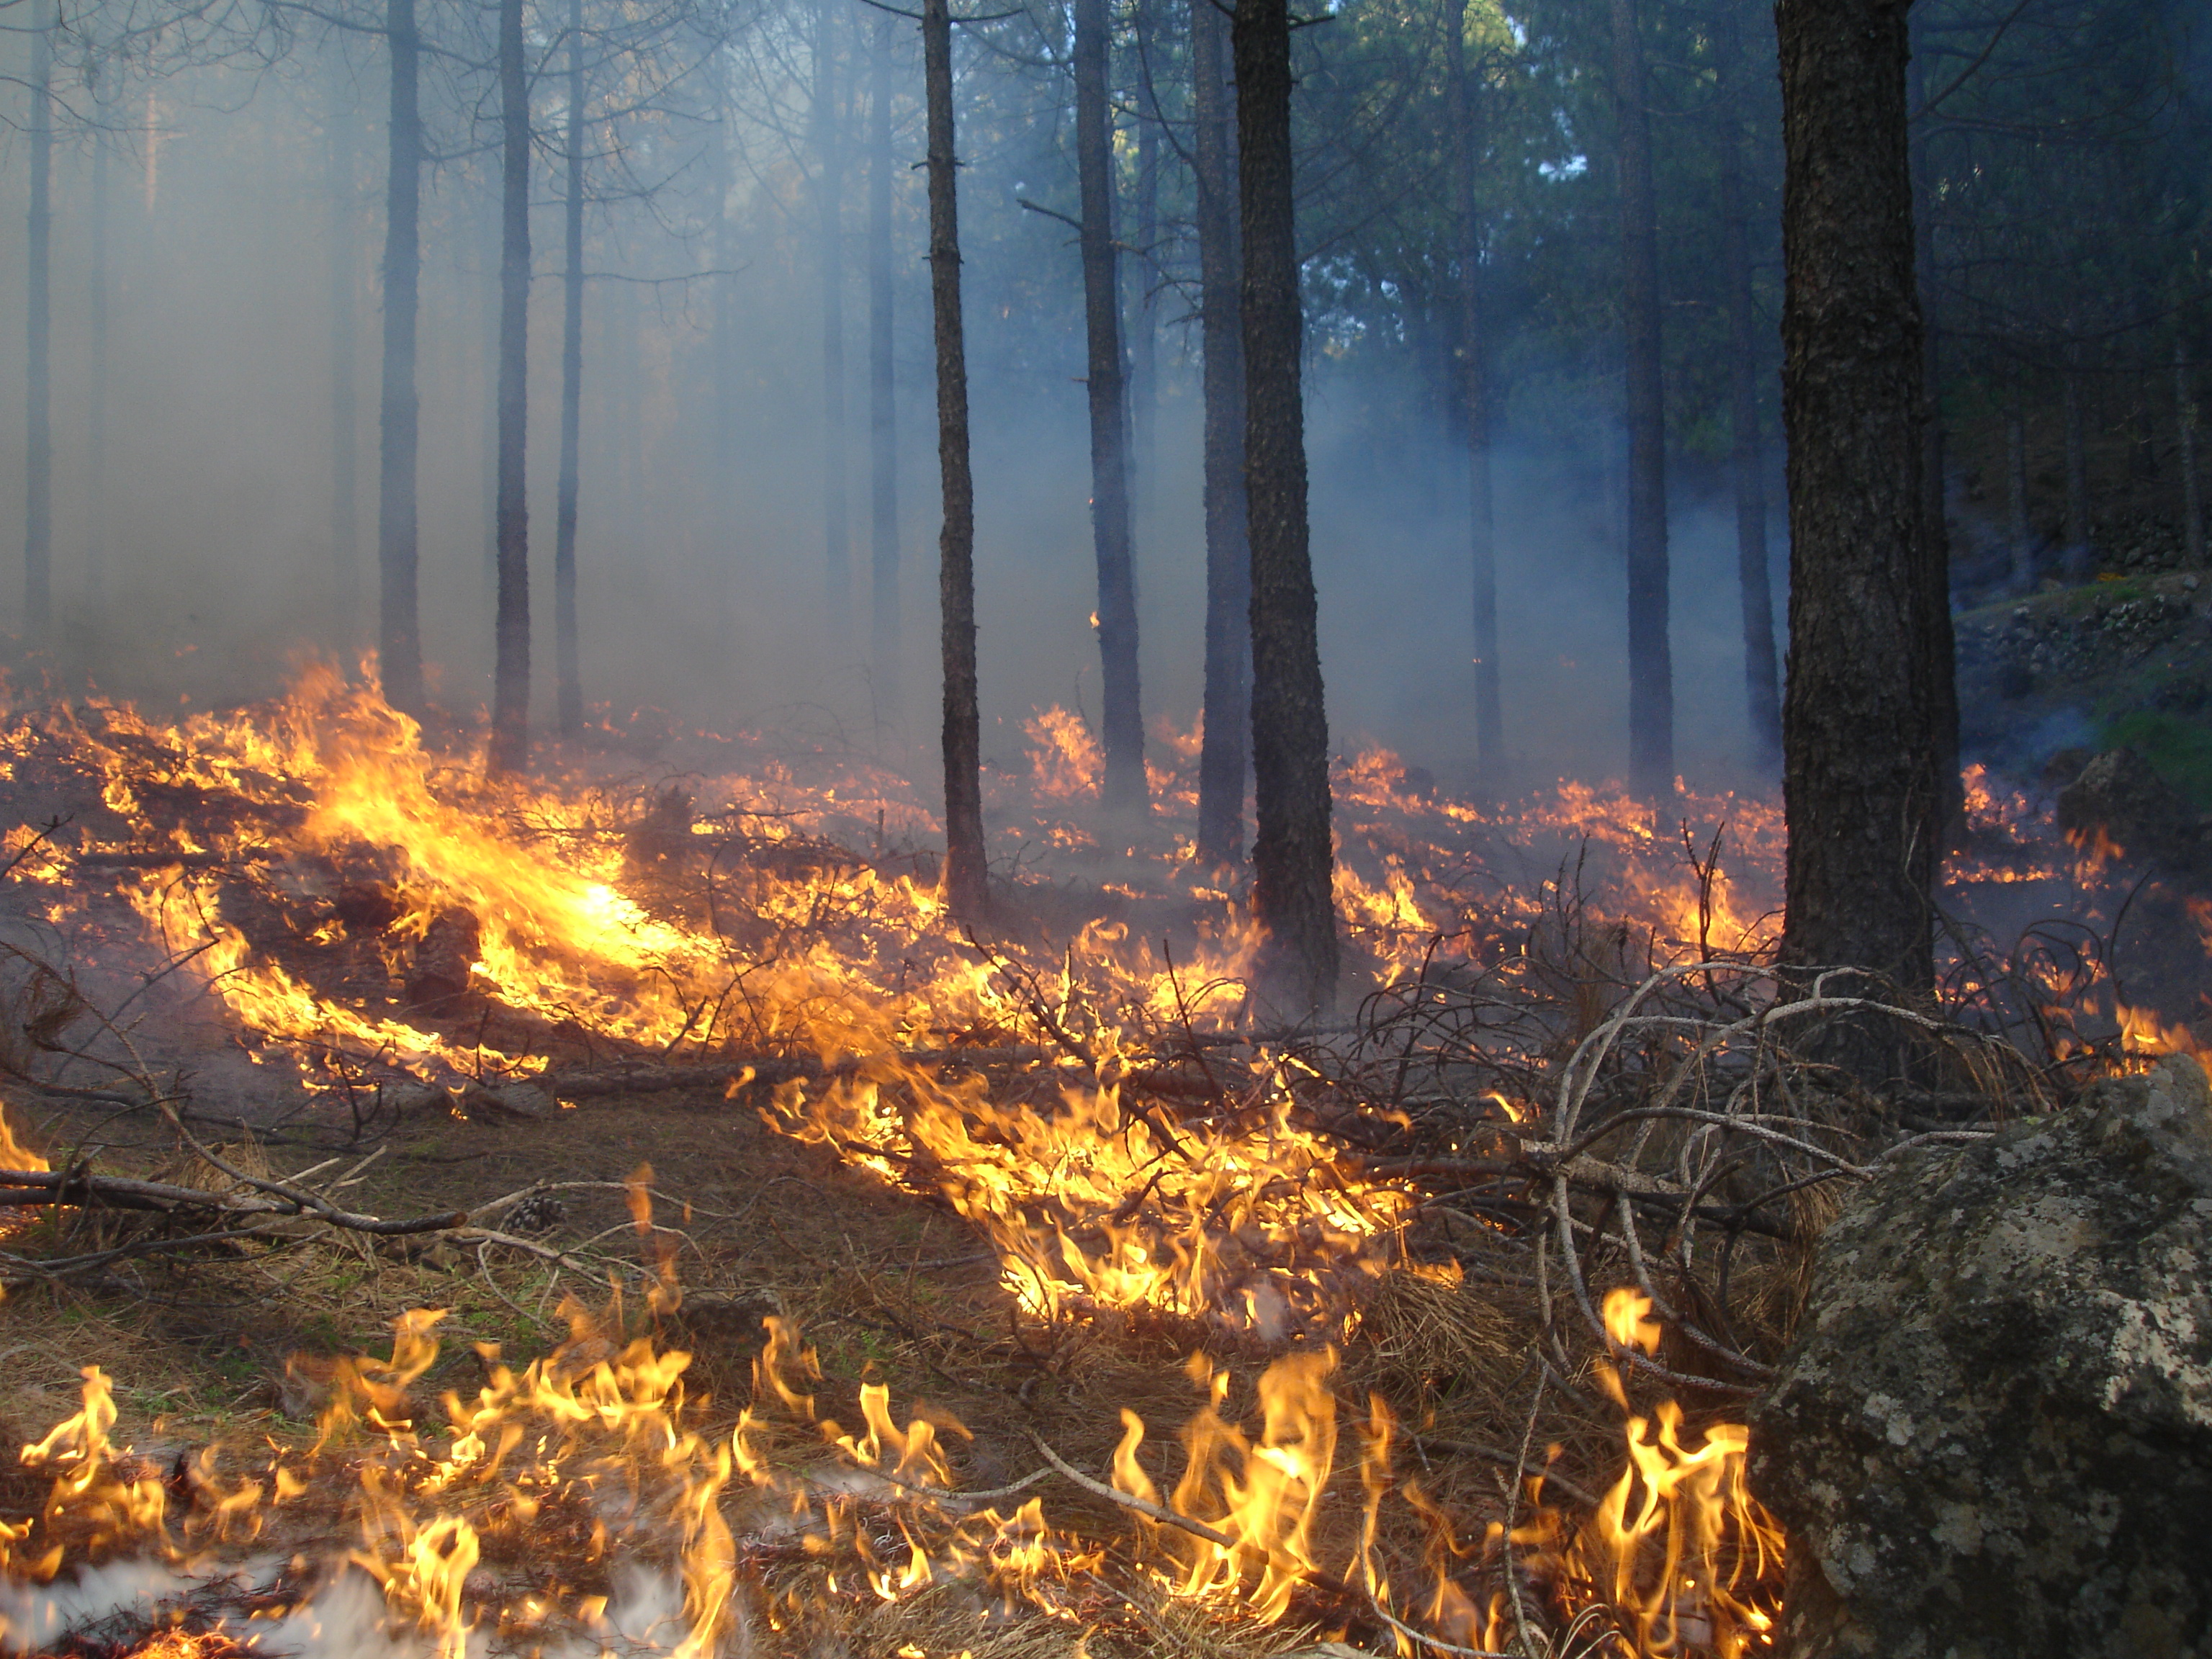 Forex incendios forestales